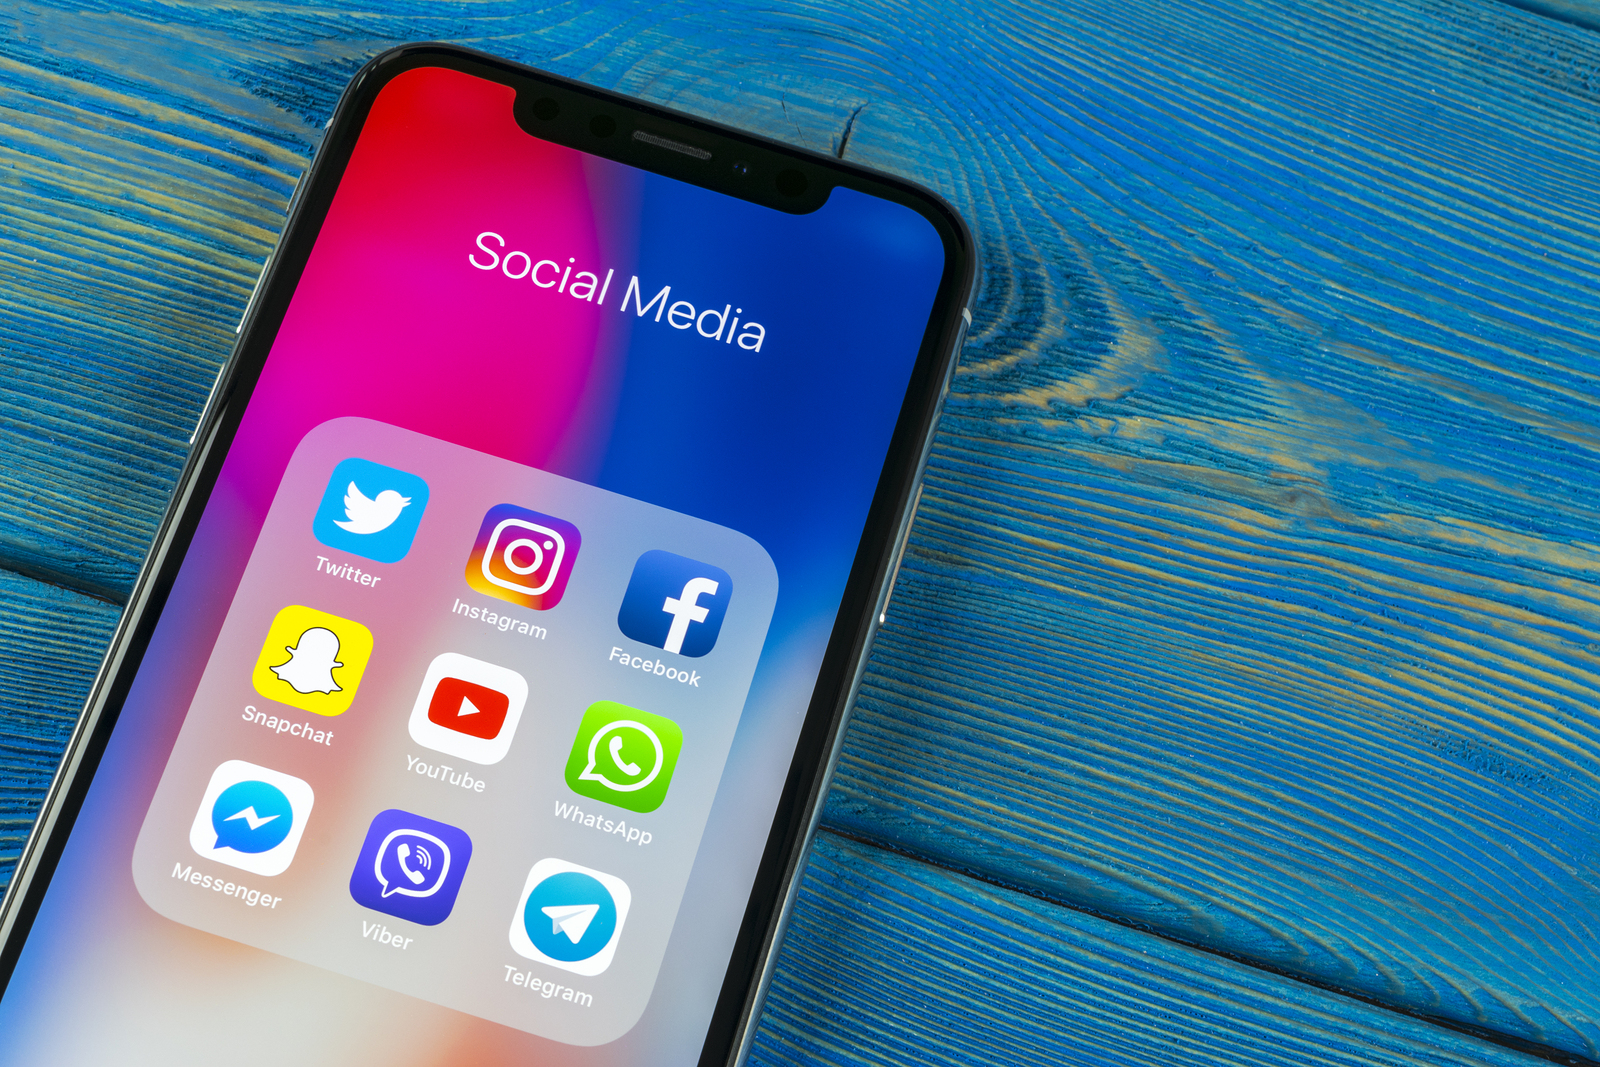 Social Media: How to Clean up Your Social Media for a Job